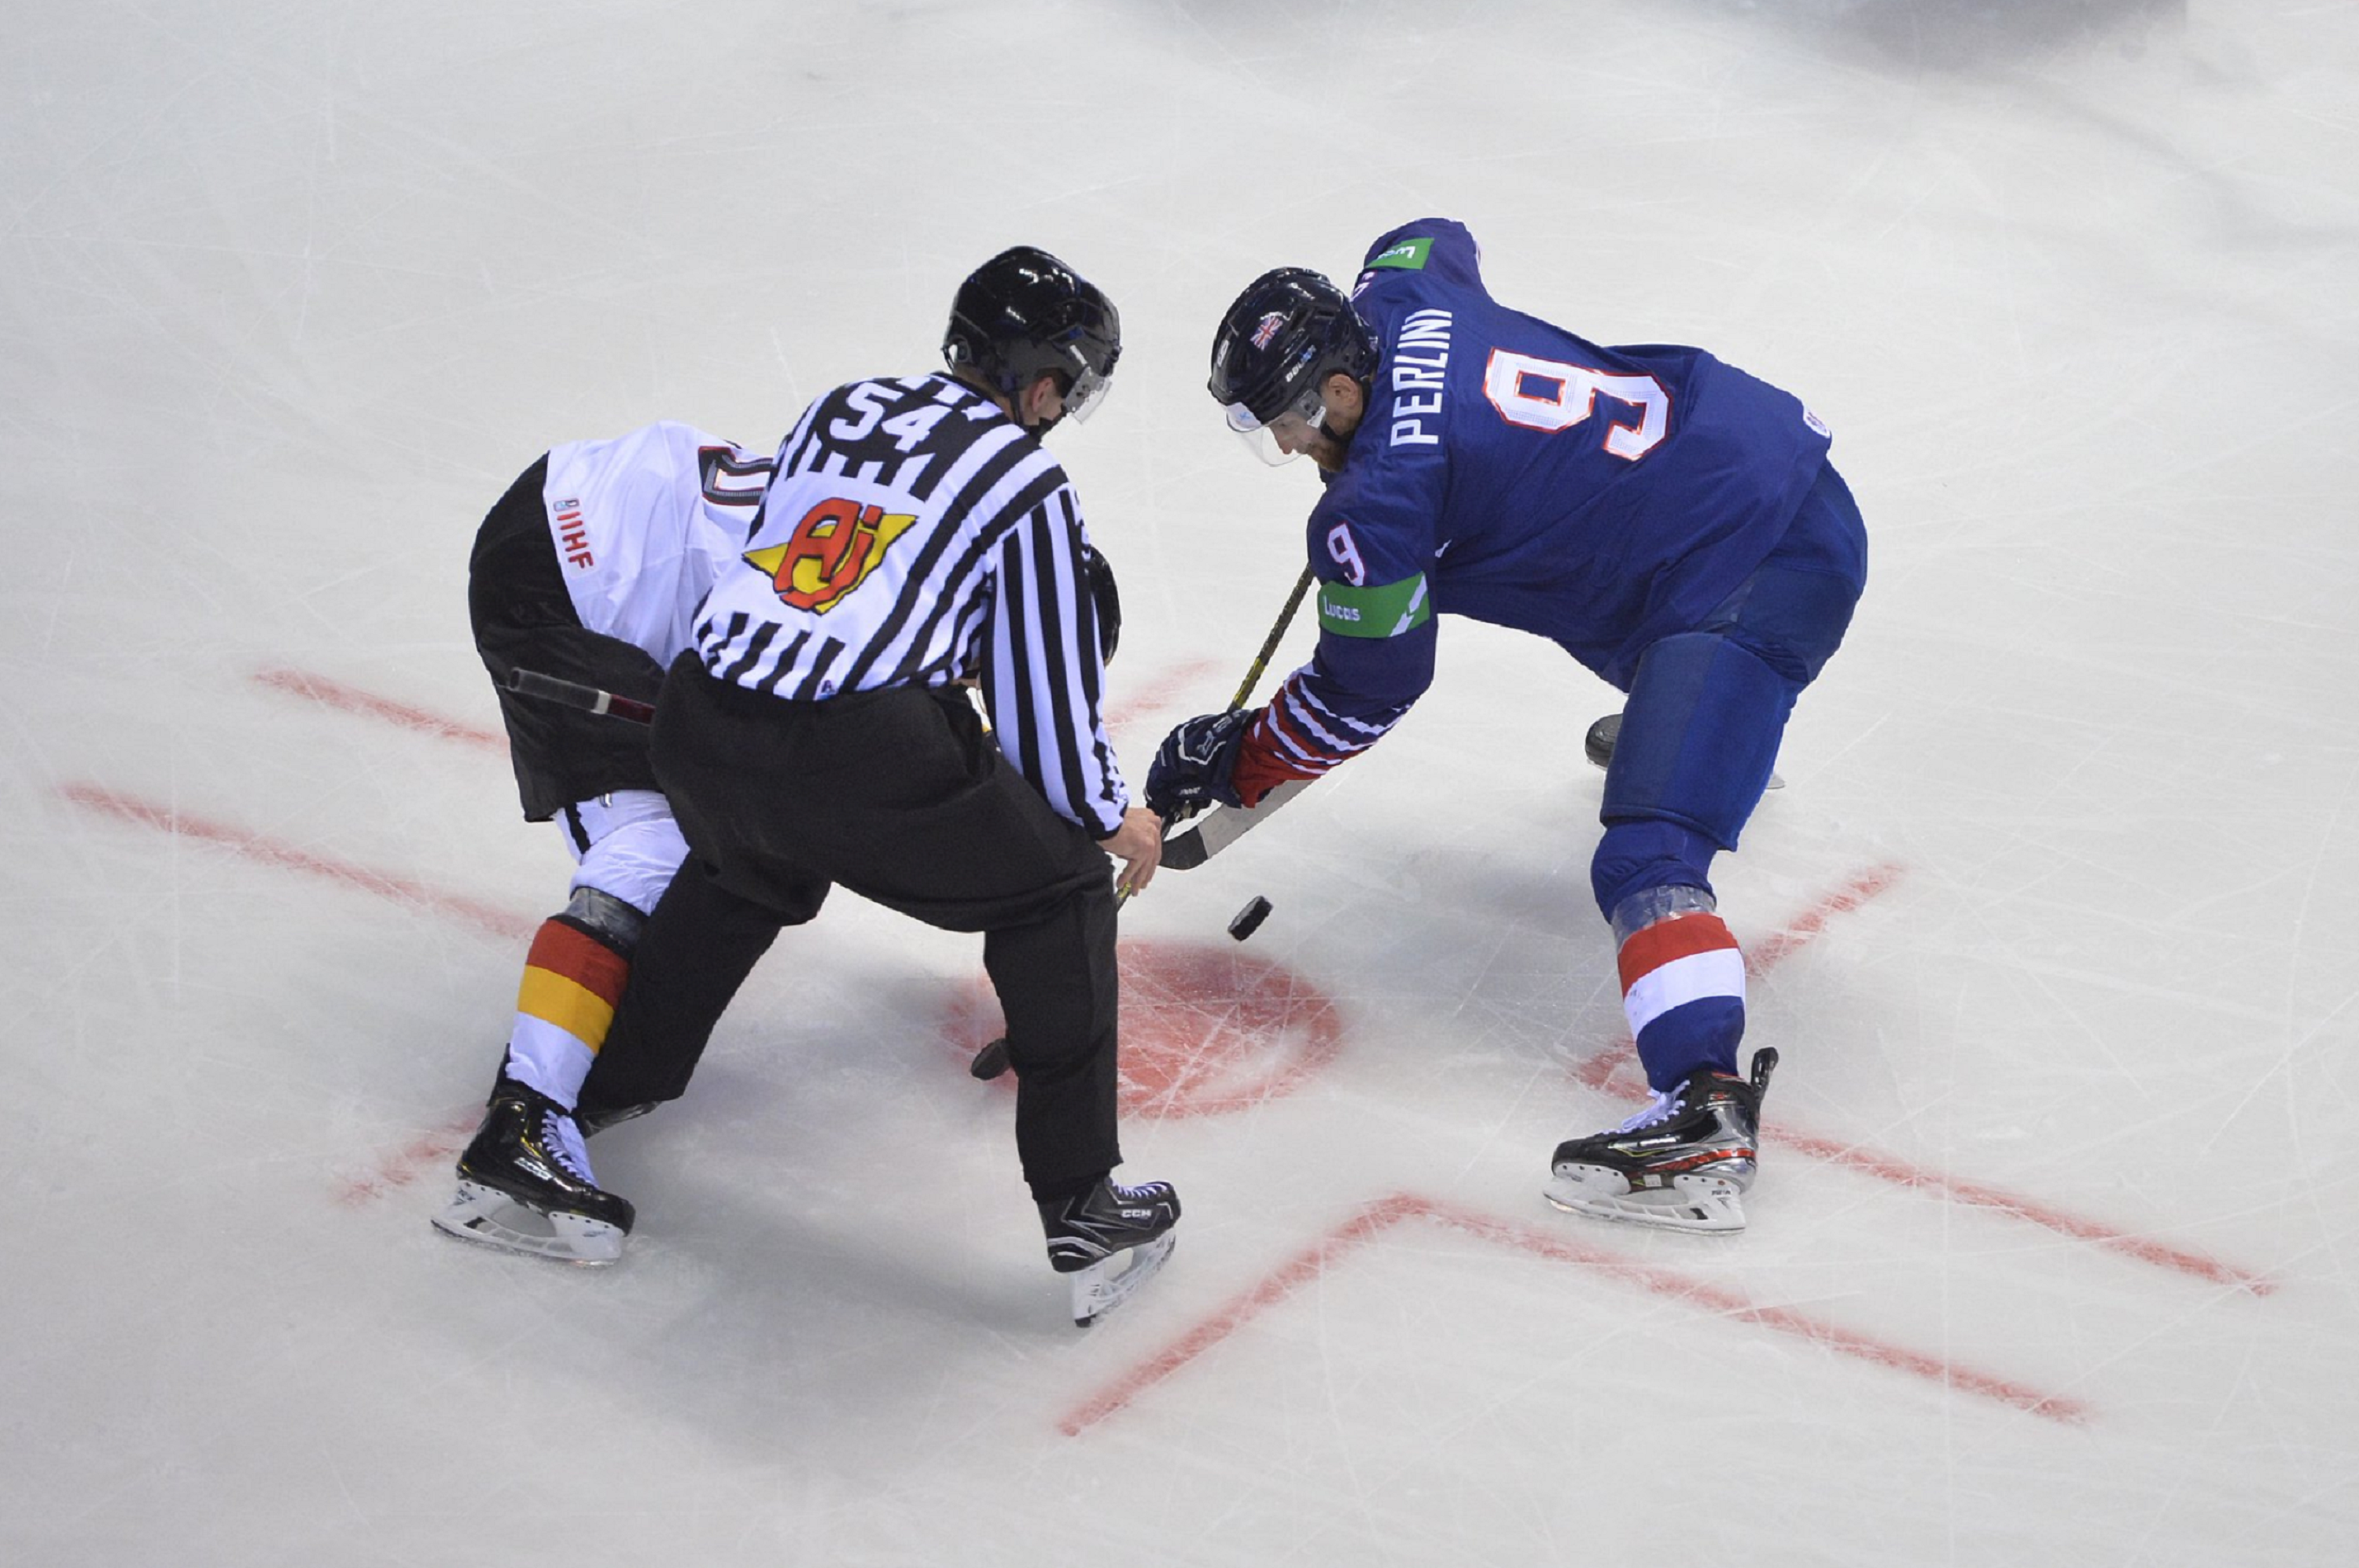 190517 | Game day: GB vs FIN Top Image